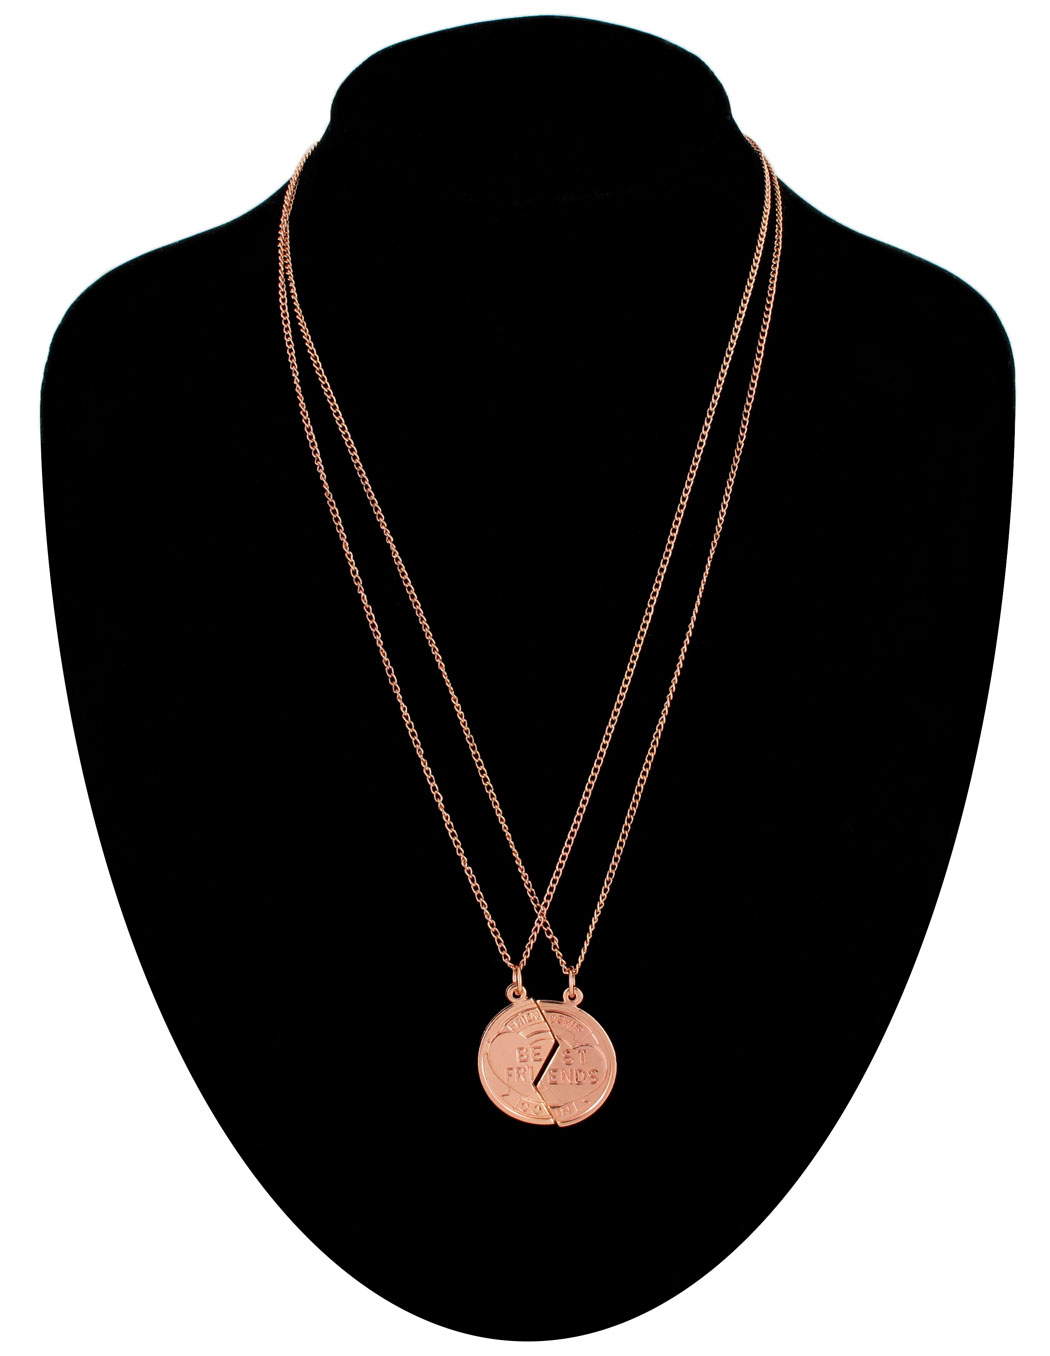 Ky & Co Pendant Bff Necklace Set Broken Coin Best Friends Rose Gold Tone Thumbnail 1